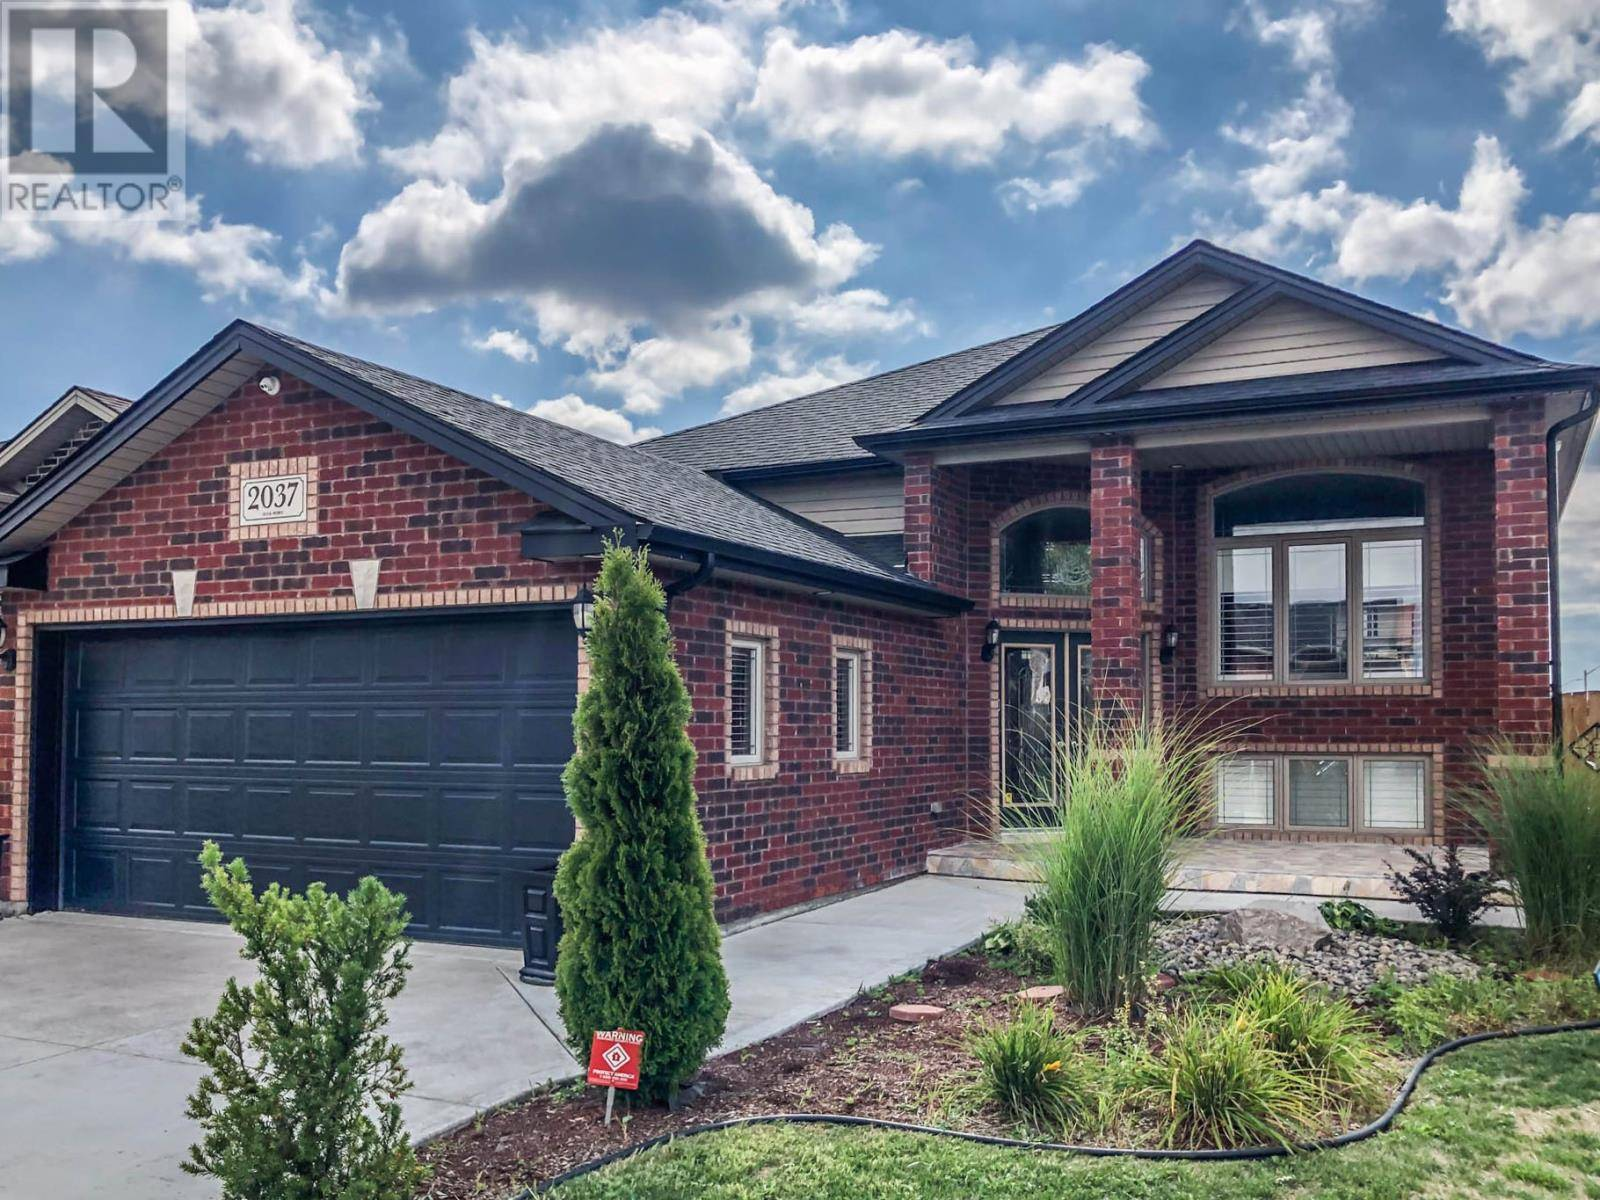 House for sale at 2037 Everts  Windsor Ontario - MLS: 19024939